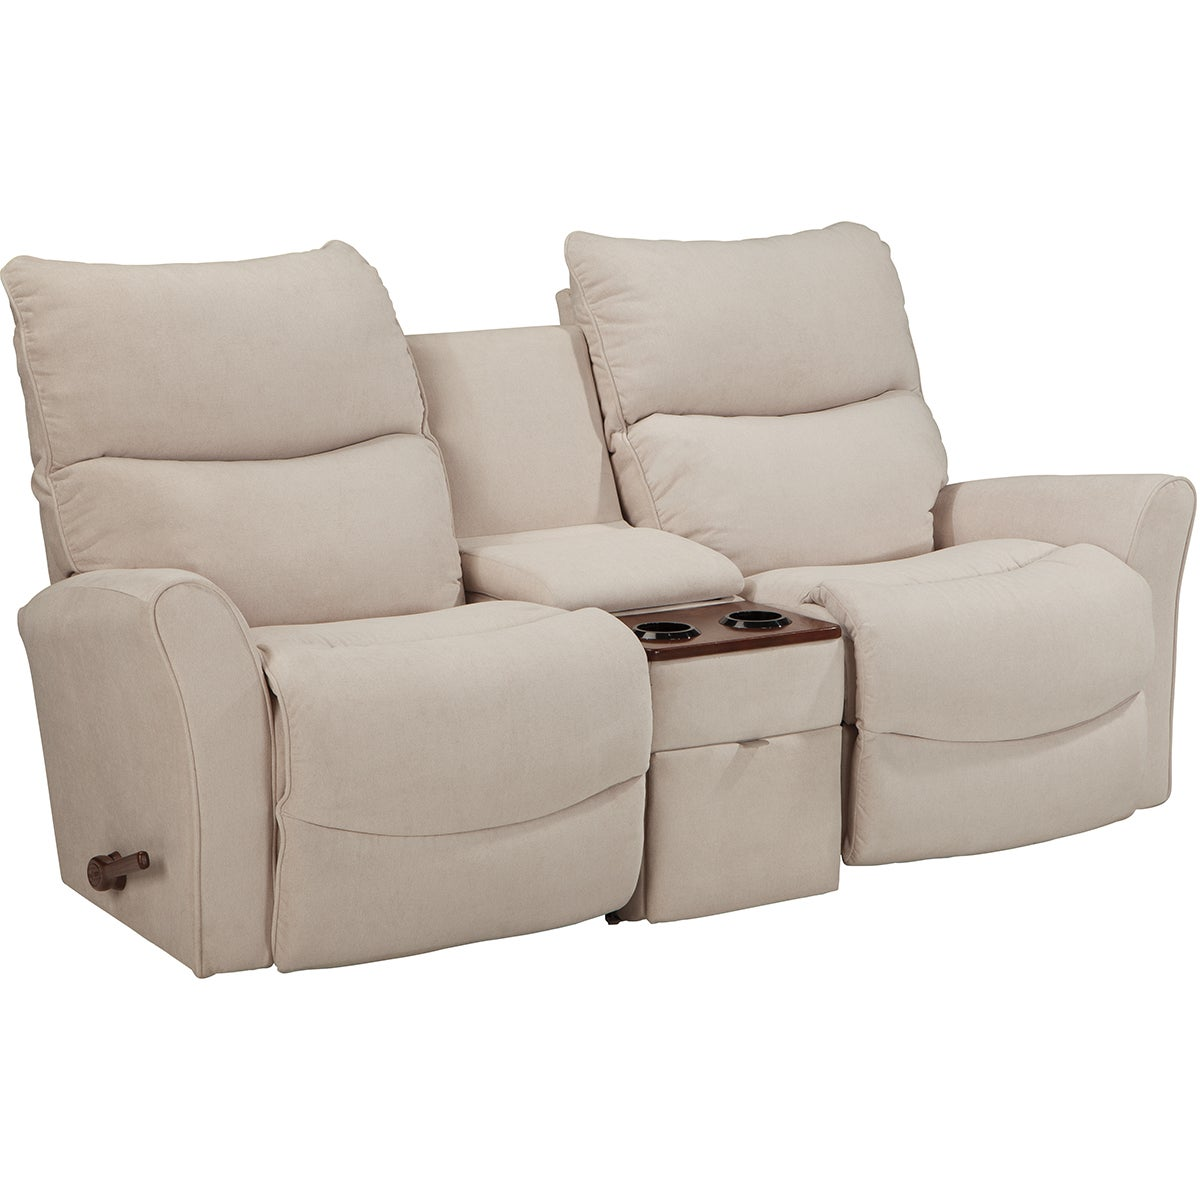 Sectional Sofas Sectional Couches La Z Boy